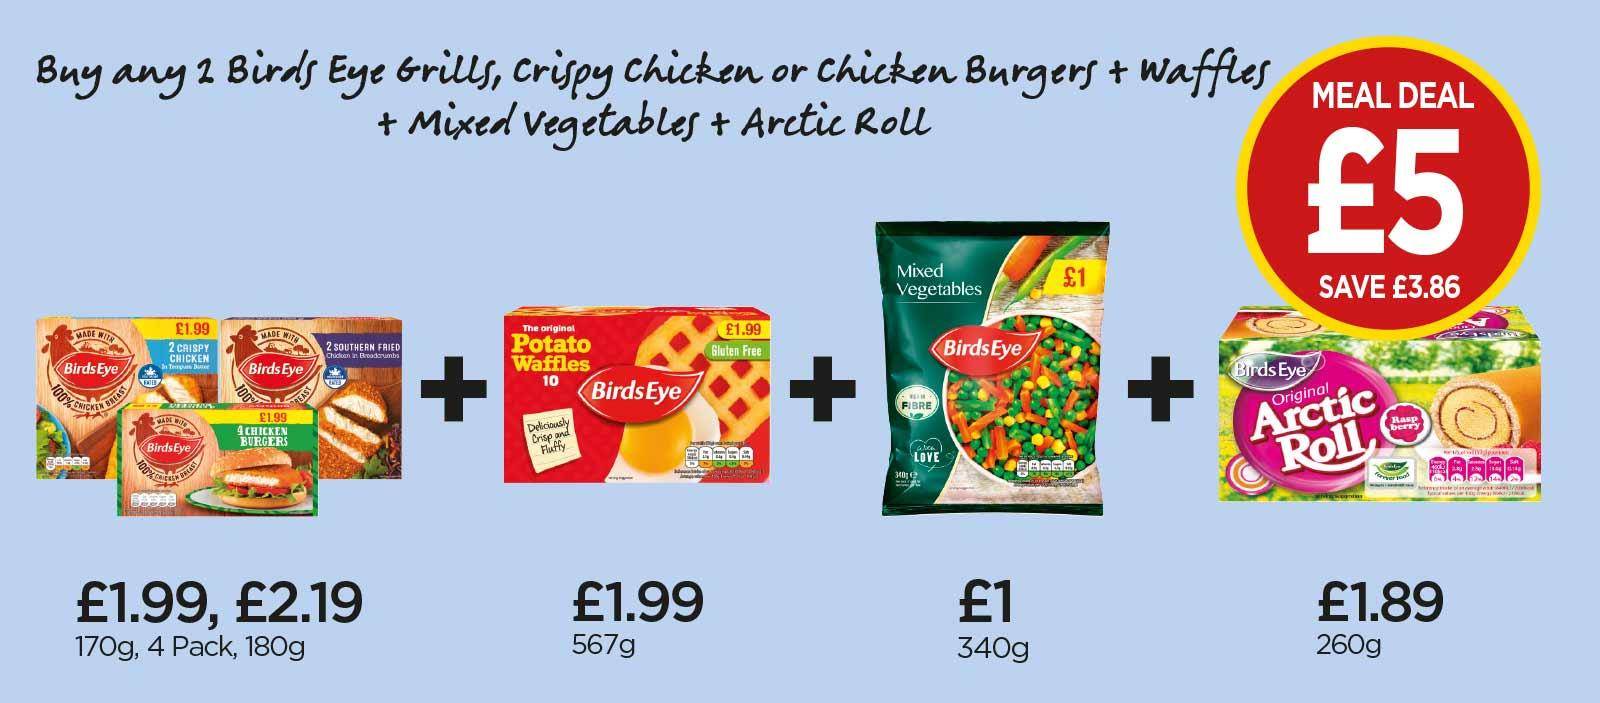 £5 MEAL DEAL: Birds Eye 2 Crispy Chicken, Potato Waffles, Mixed Vegetables, Arctic Roll Raspberry - £5 at Budgens